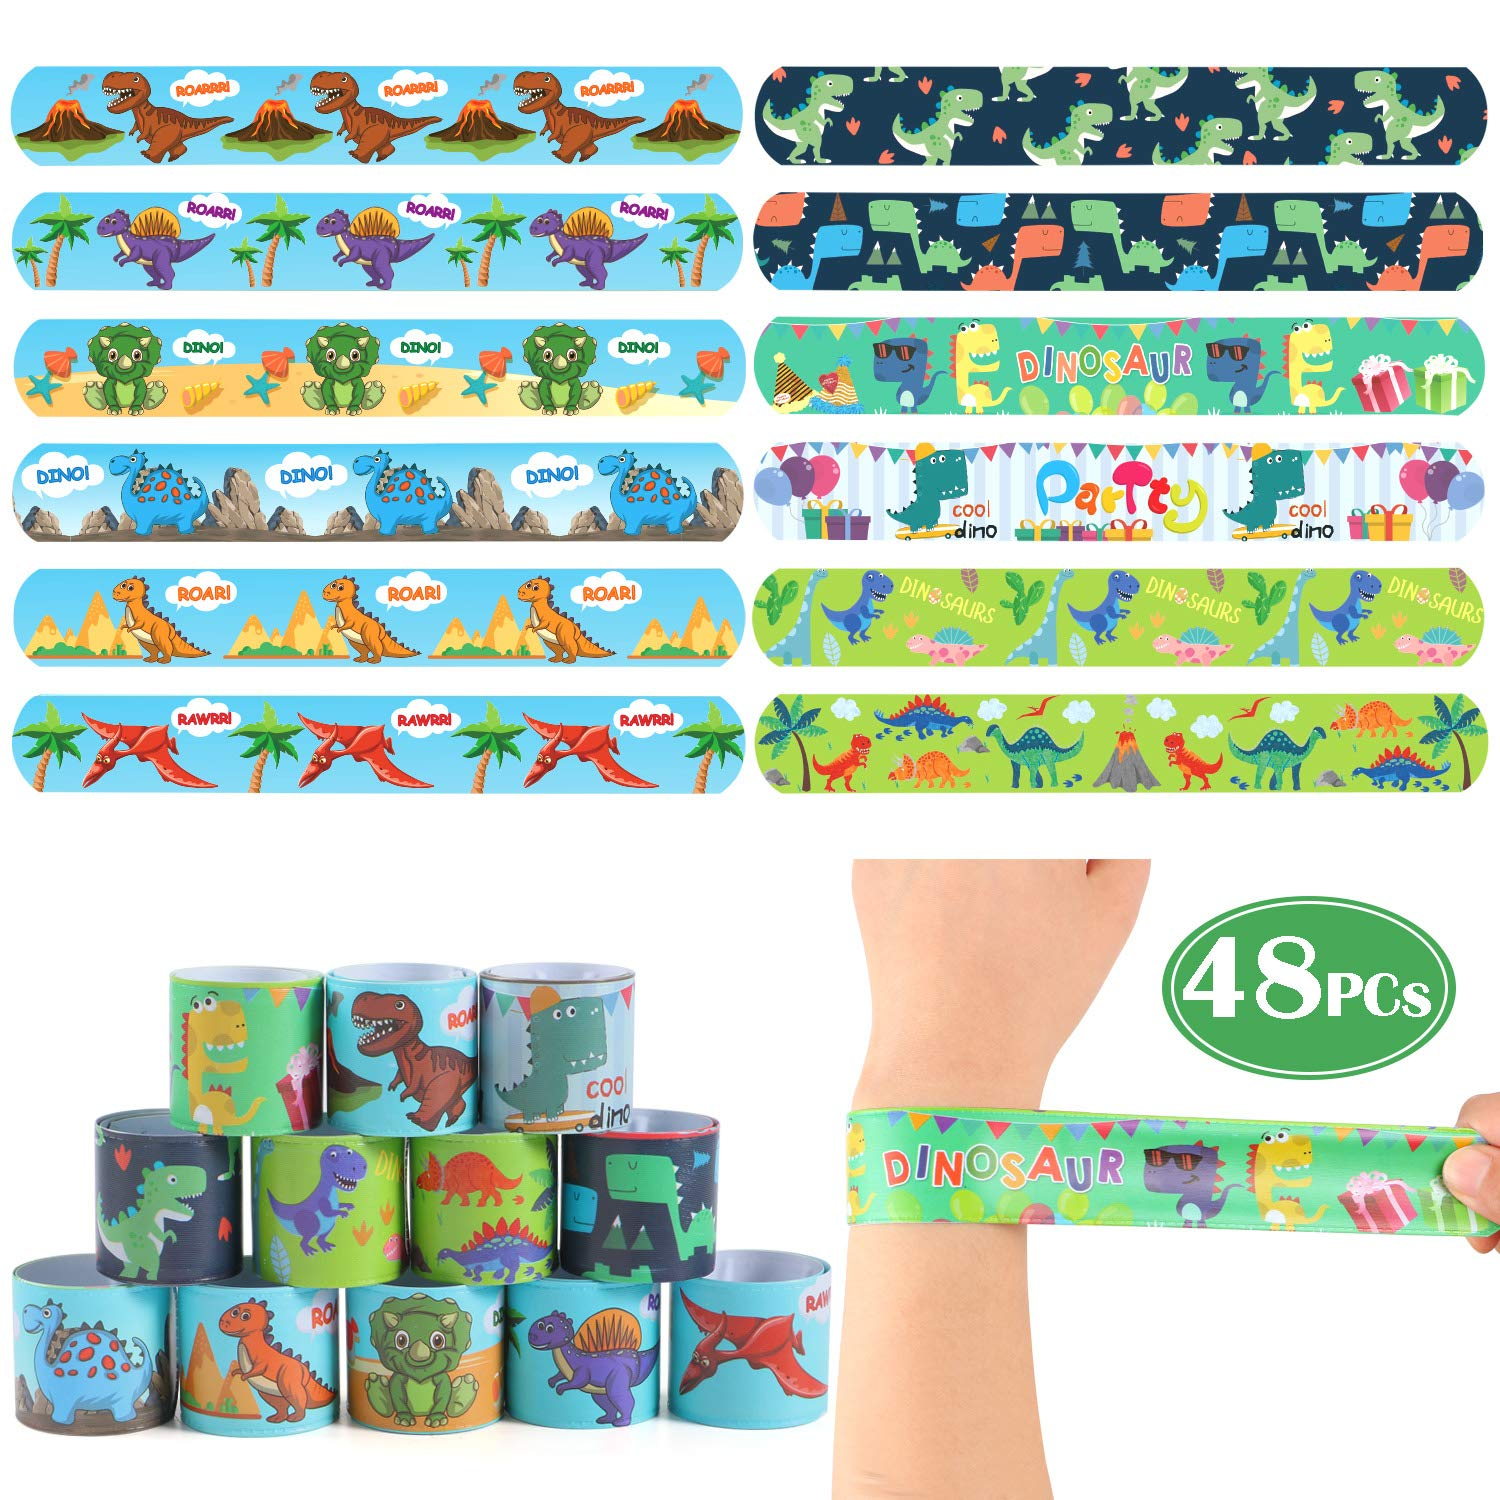 Lorfancy 48 Pcs Dinosaur Slap Bracelets with Animal Design Kids Bracelets Snap Bands Class Prize for Adults Boys Kids Dino Dinosaur Toys Dinosaur Party Favors Supplies by Lorfancy